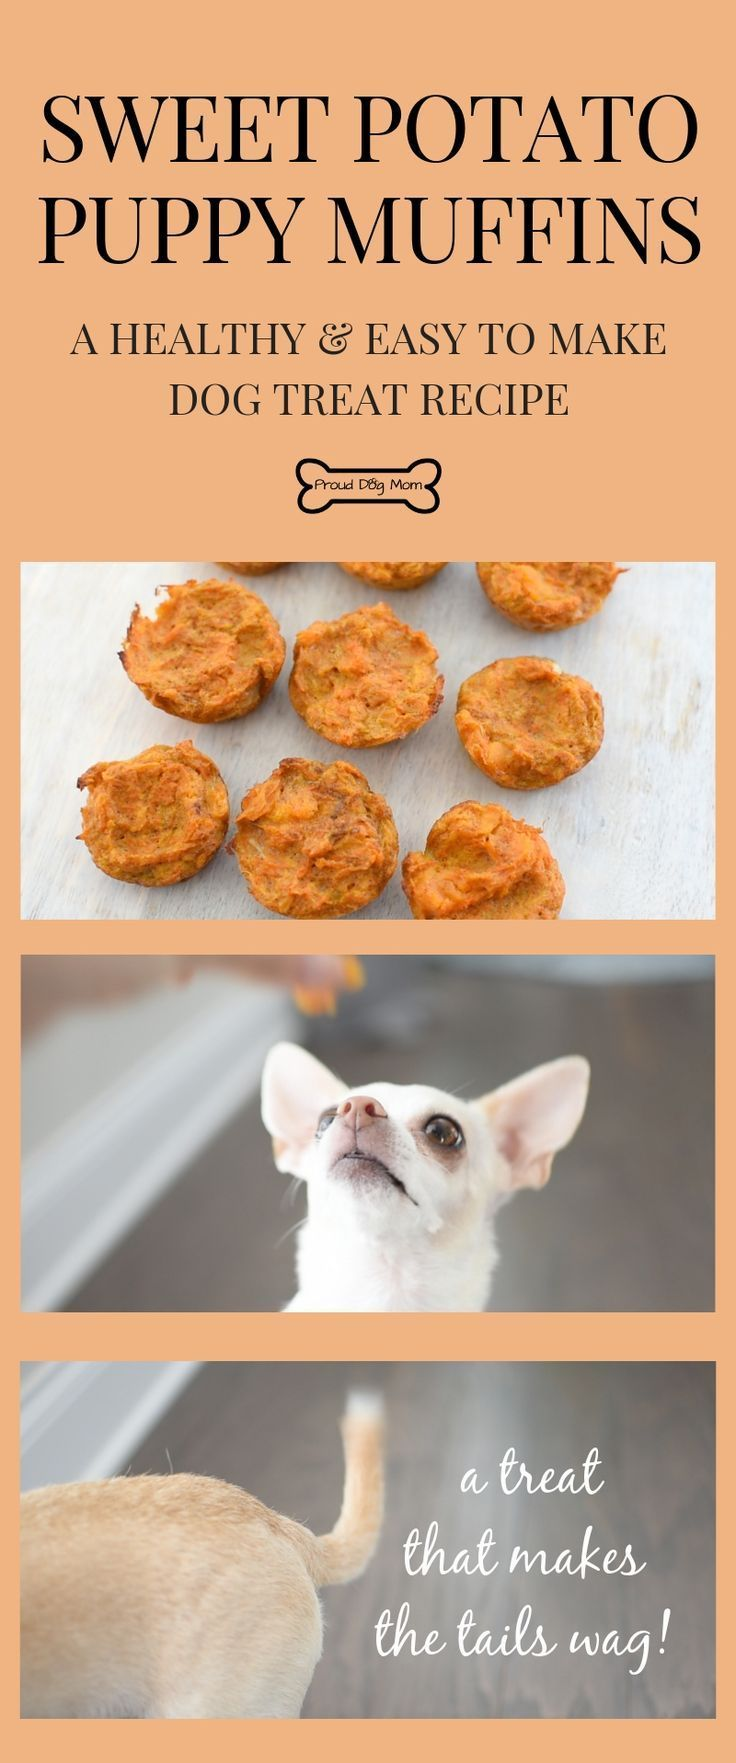 Sweet Potato Puppy Muffins Recipe Pets Are People Too Dog